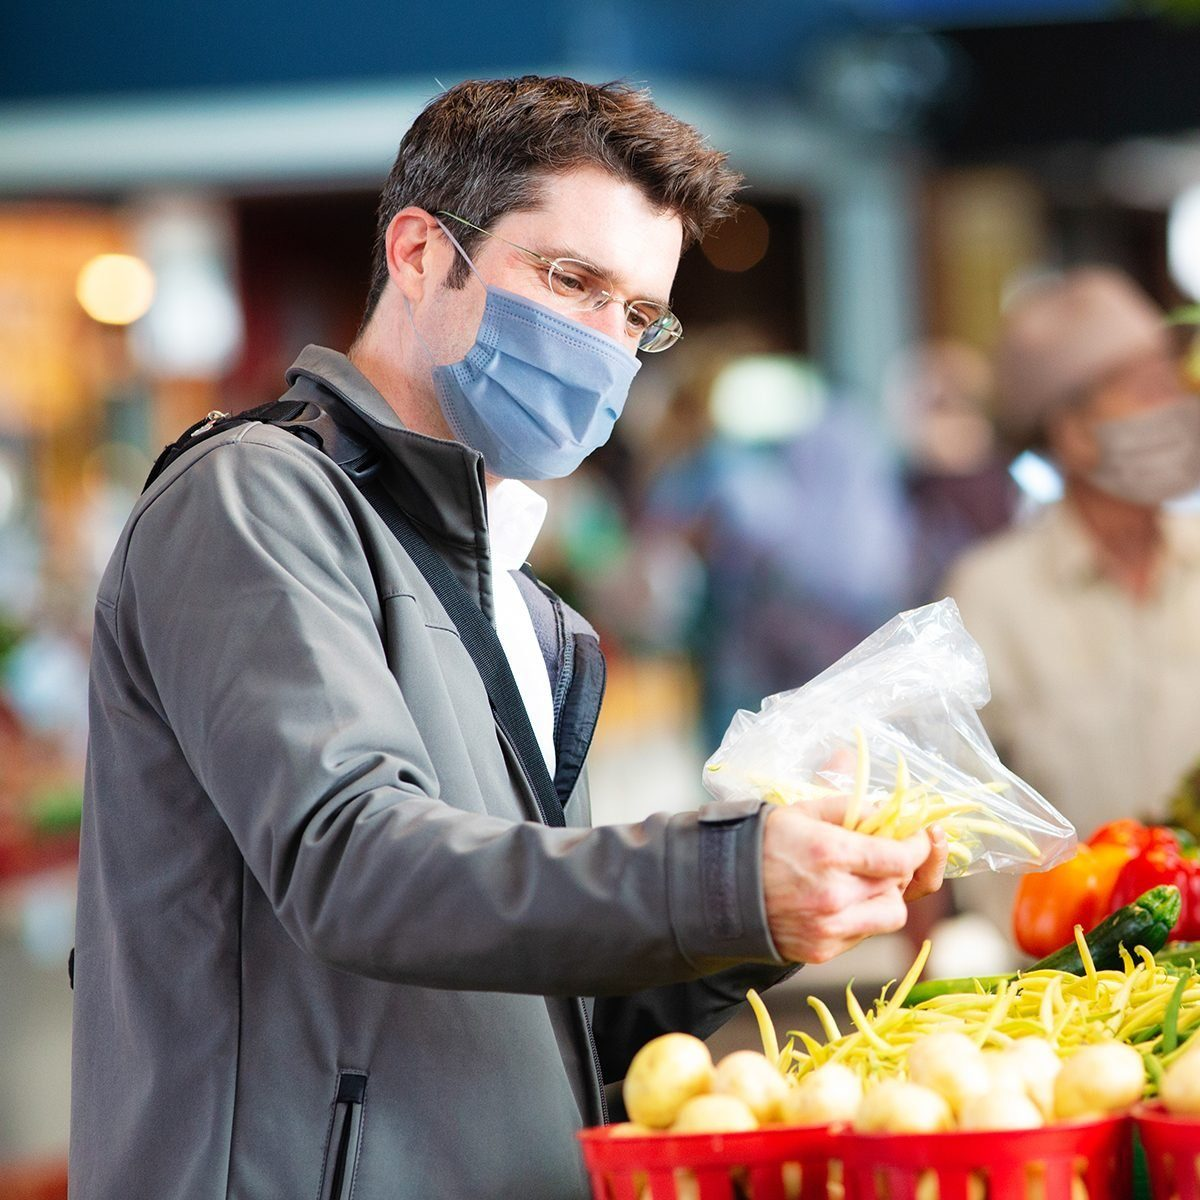 Young man wearing face cover selecting string beans at farmer's market to prevent spreading the covid 19 virus.